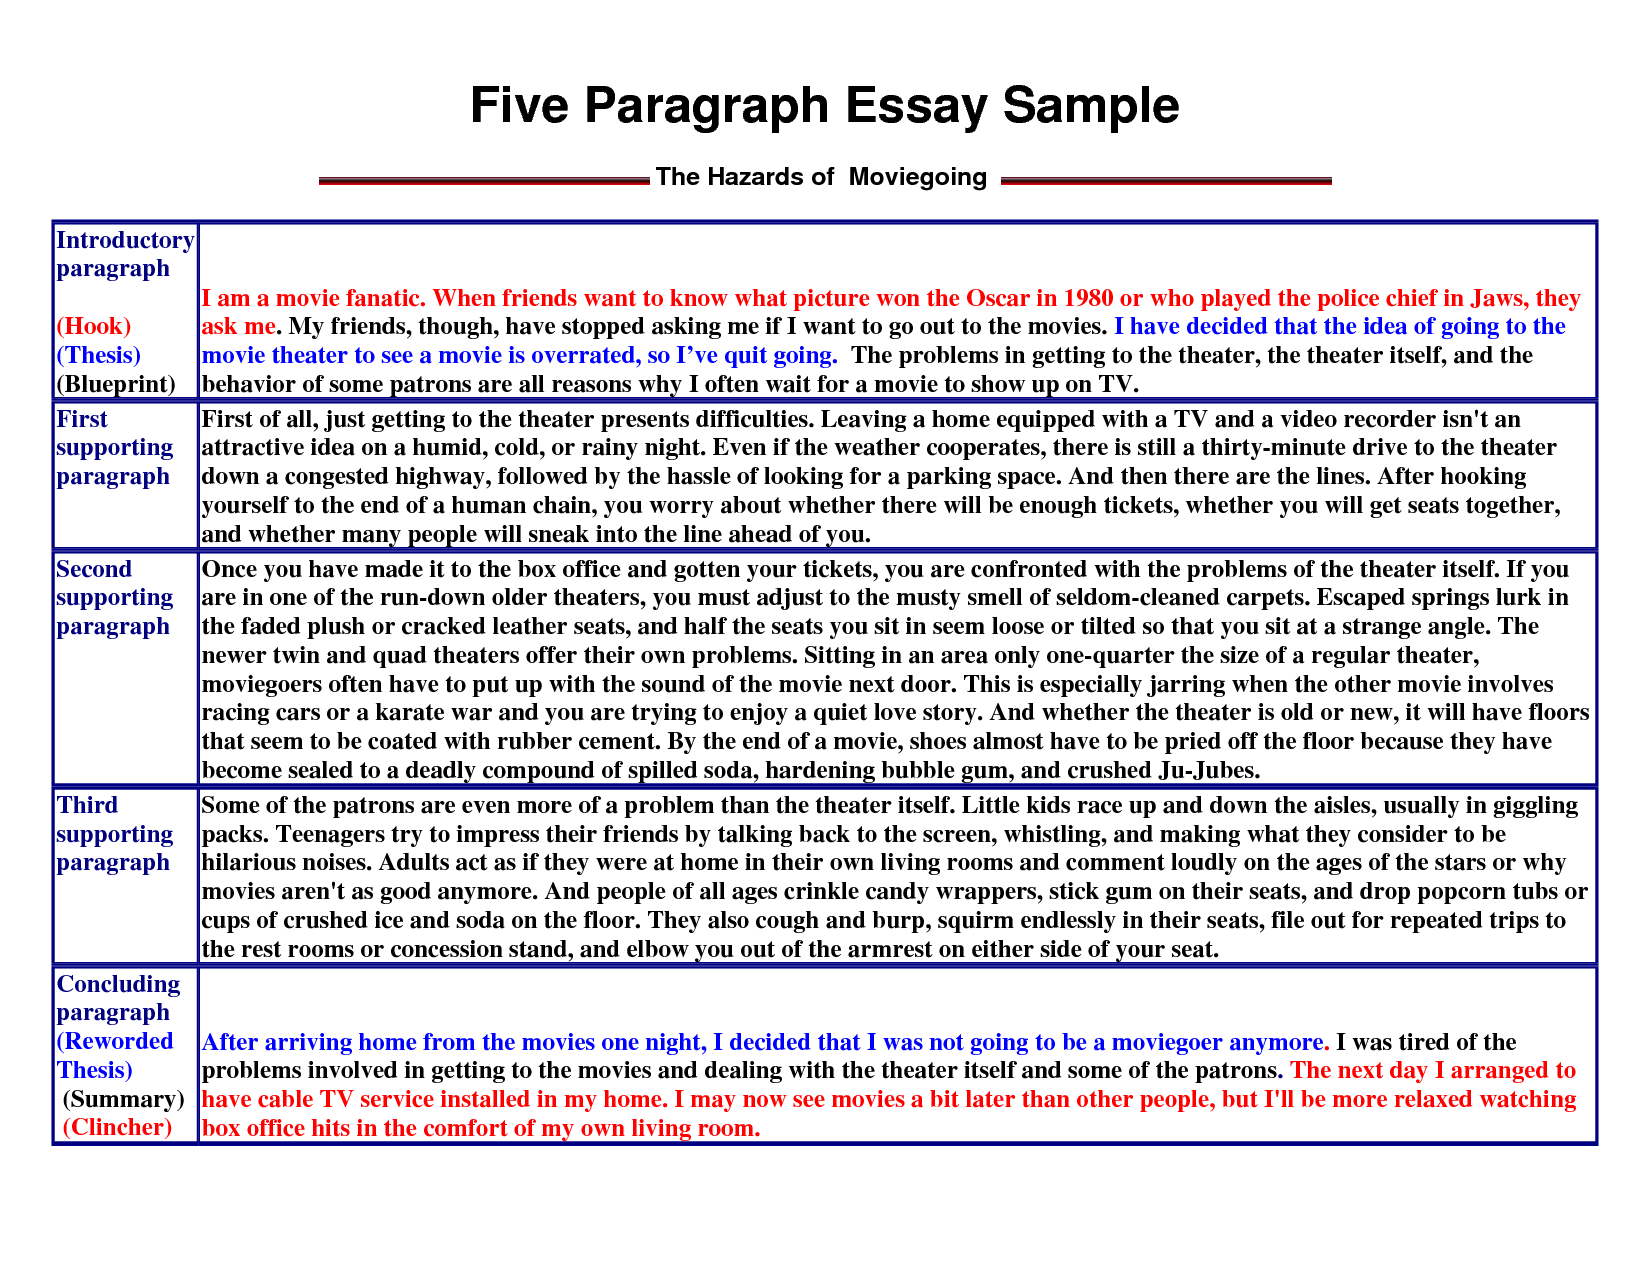 008 Paragraph Essay Sample Example Stirring 5 Free Outline Template Printable Argumentative Full